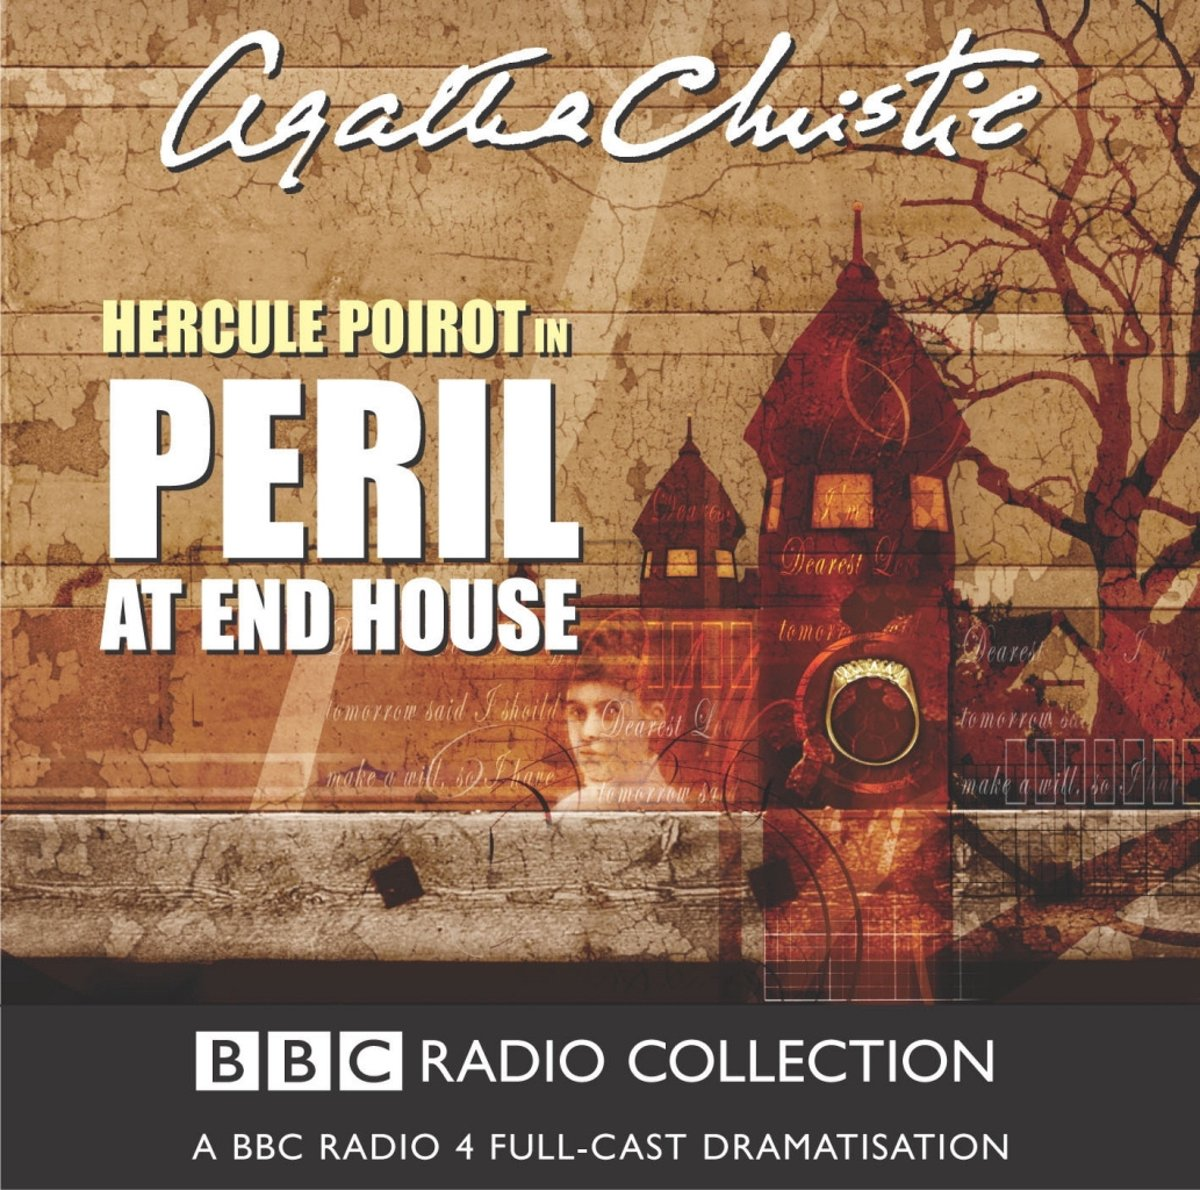 Hercule Poirot in Peril At End House